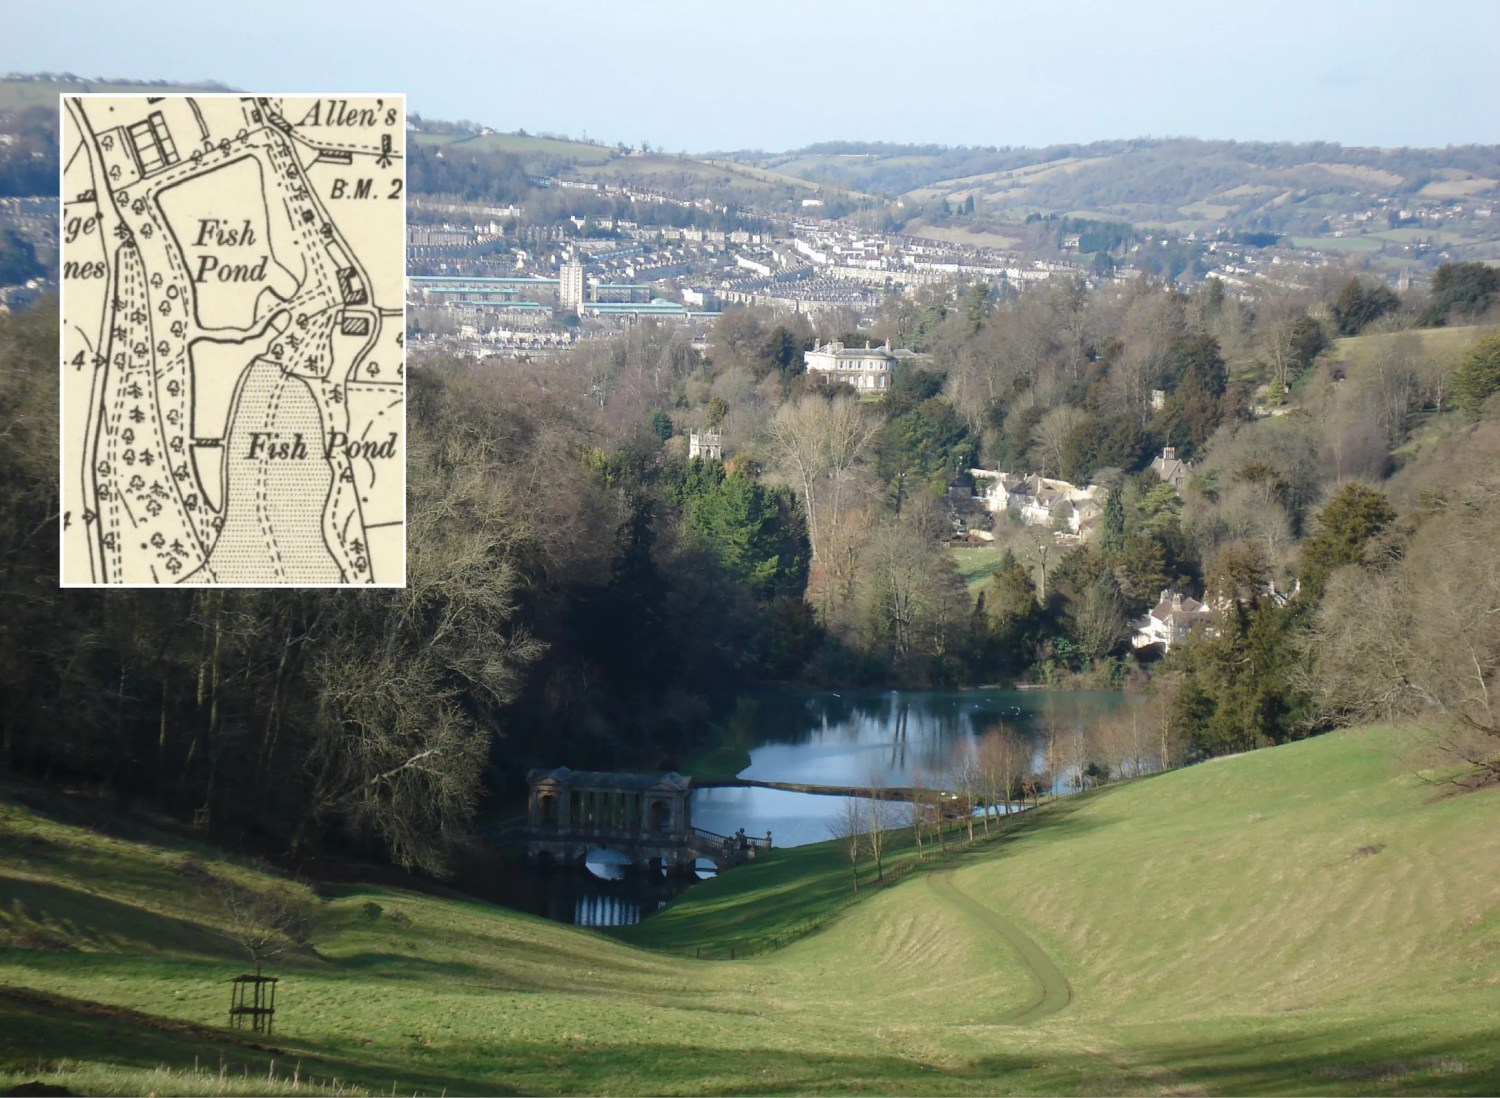 above Prior Park, on the outskirts of Bath, Somerset, is an example of a split-level lake, where two separate bodies of water (both of them former fish ponds) are made to look like one large lake by the careful siting of the dam at the change of levels.